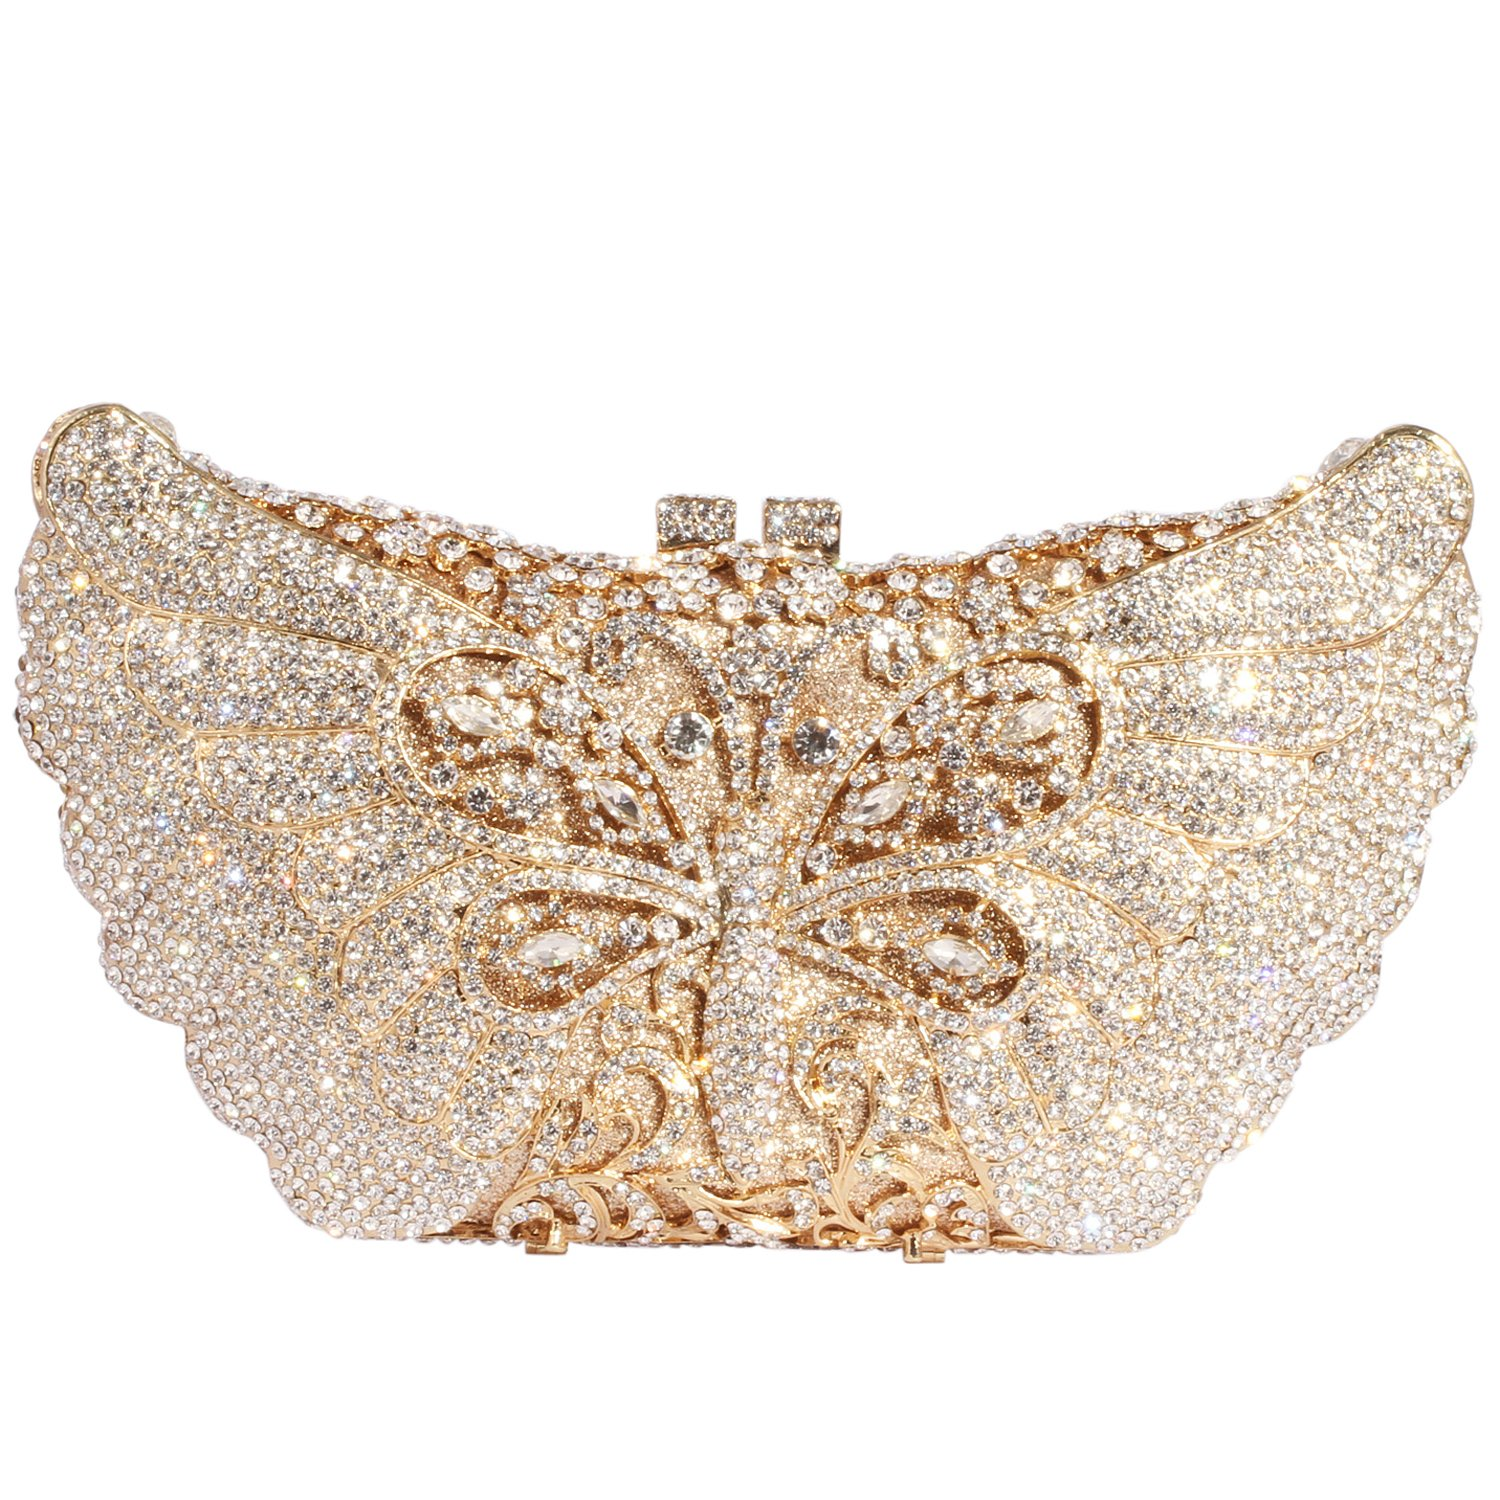 Digabi Butterfly Purses For women New Style Luxury Rhinestone Crystal Evening Clutch Bags (One Size : 8.3 IN (L) x 4.7 IN (H) x 1.77 IN (W), White Crystal - Gold Plated) by Digabi